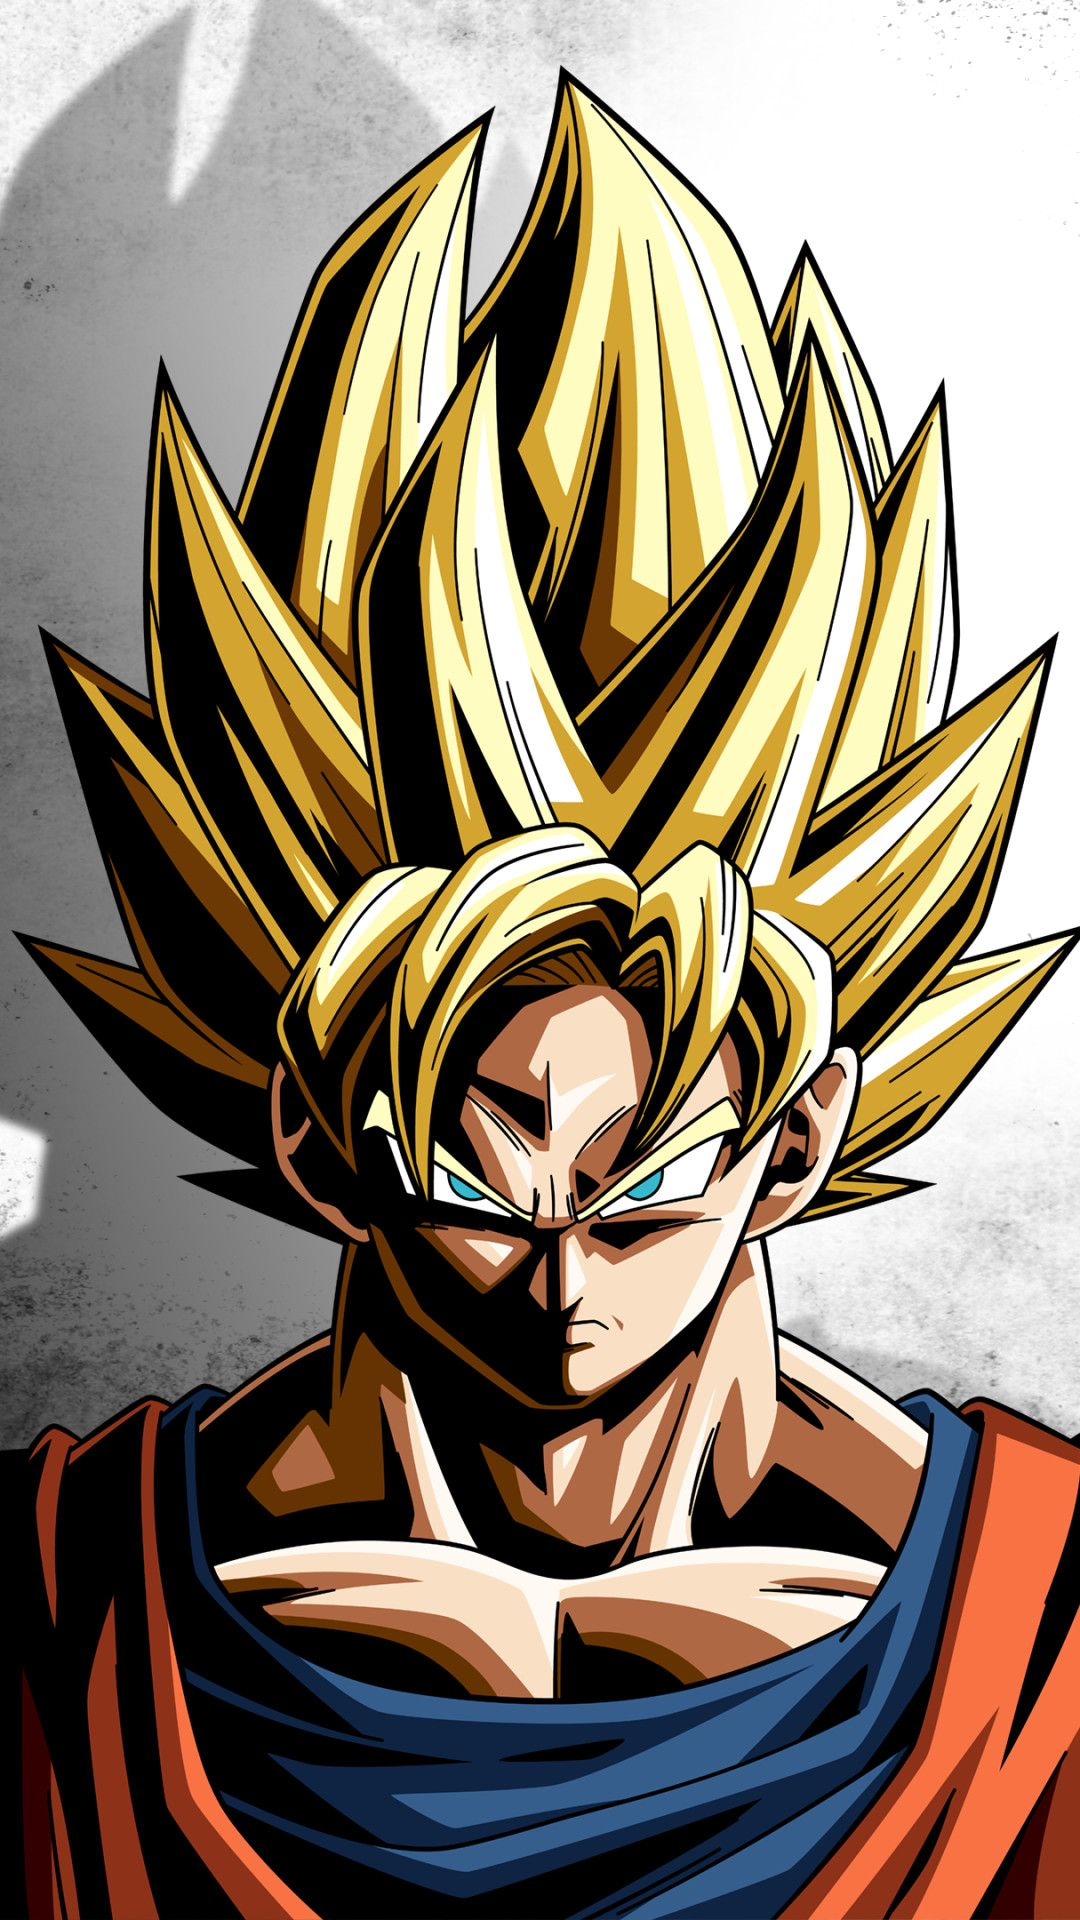 Dragon Ball Z Anime Iphone Wallpapers Iphone Wallpaper Dragon Ball Z Iphone Wallpaper Dragon Ball Wallpaper Iphone Dragon Ball Super Wallpapers